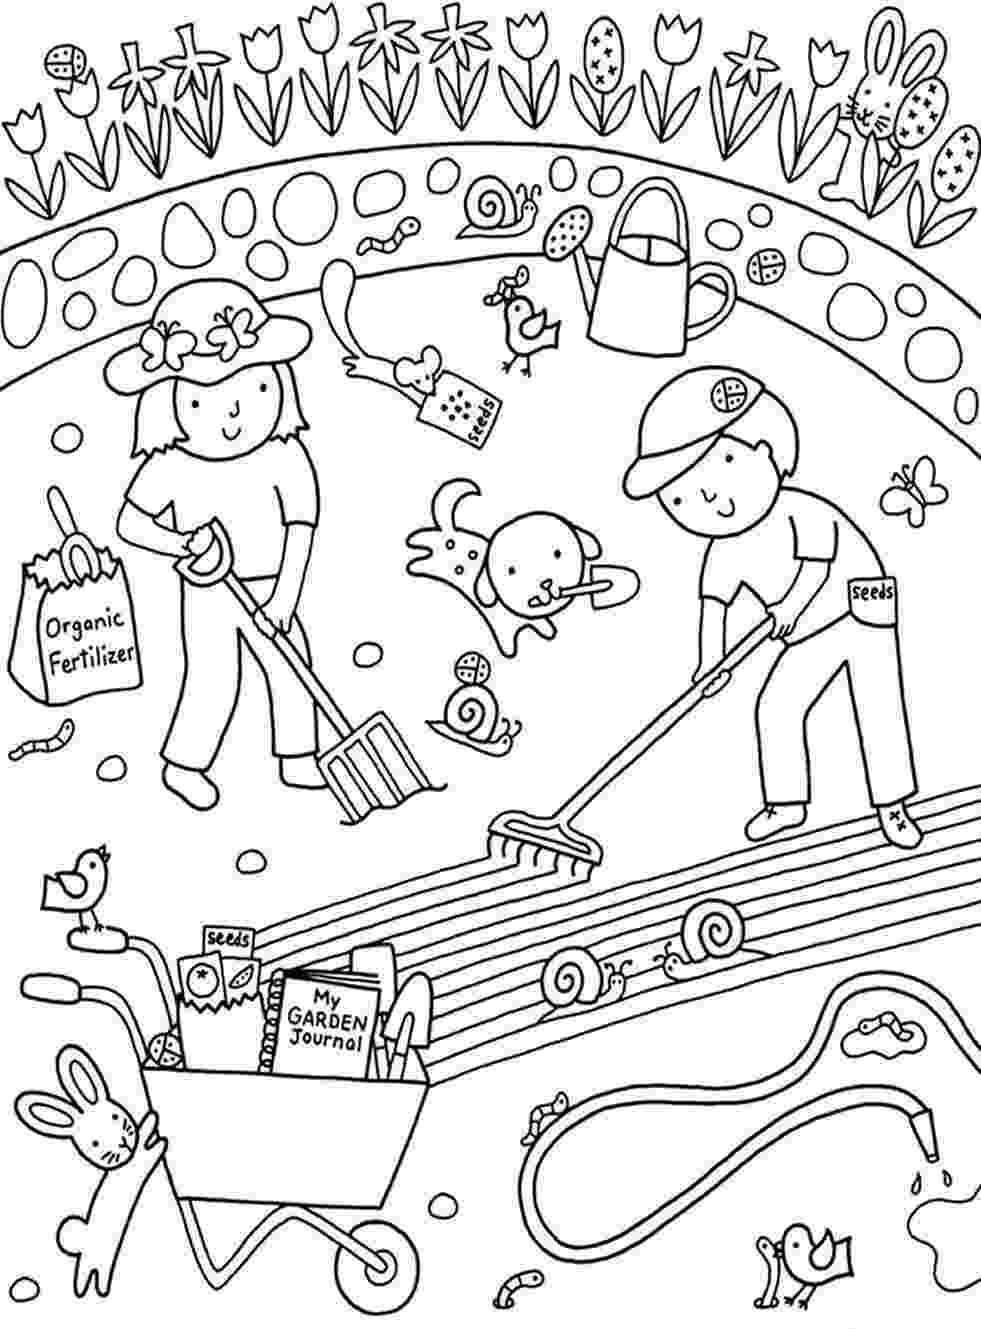 gardening colouring pages 18 best gardening coloring pages images on pinterest gardening colouring pages